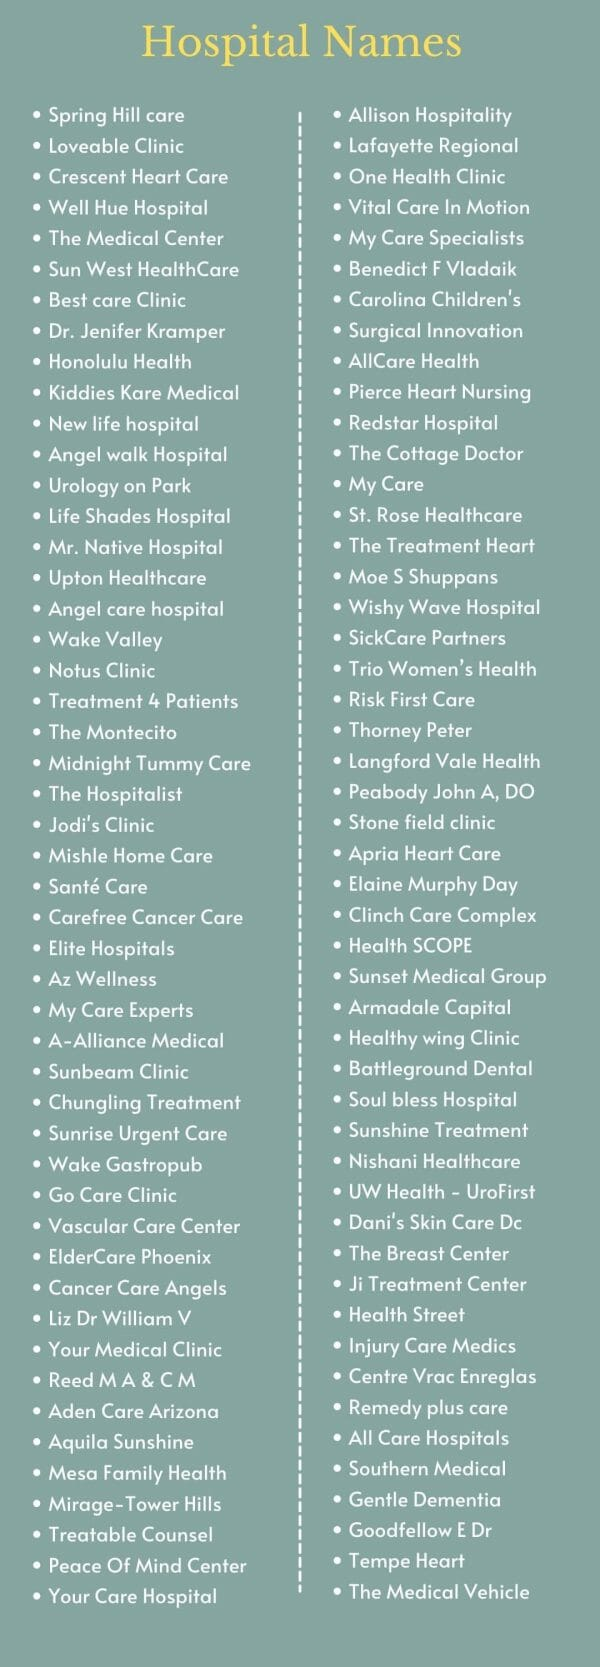 Hospital Names: infographic